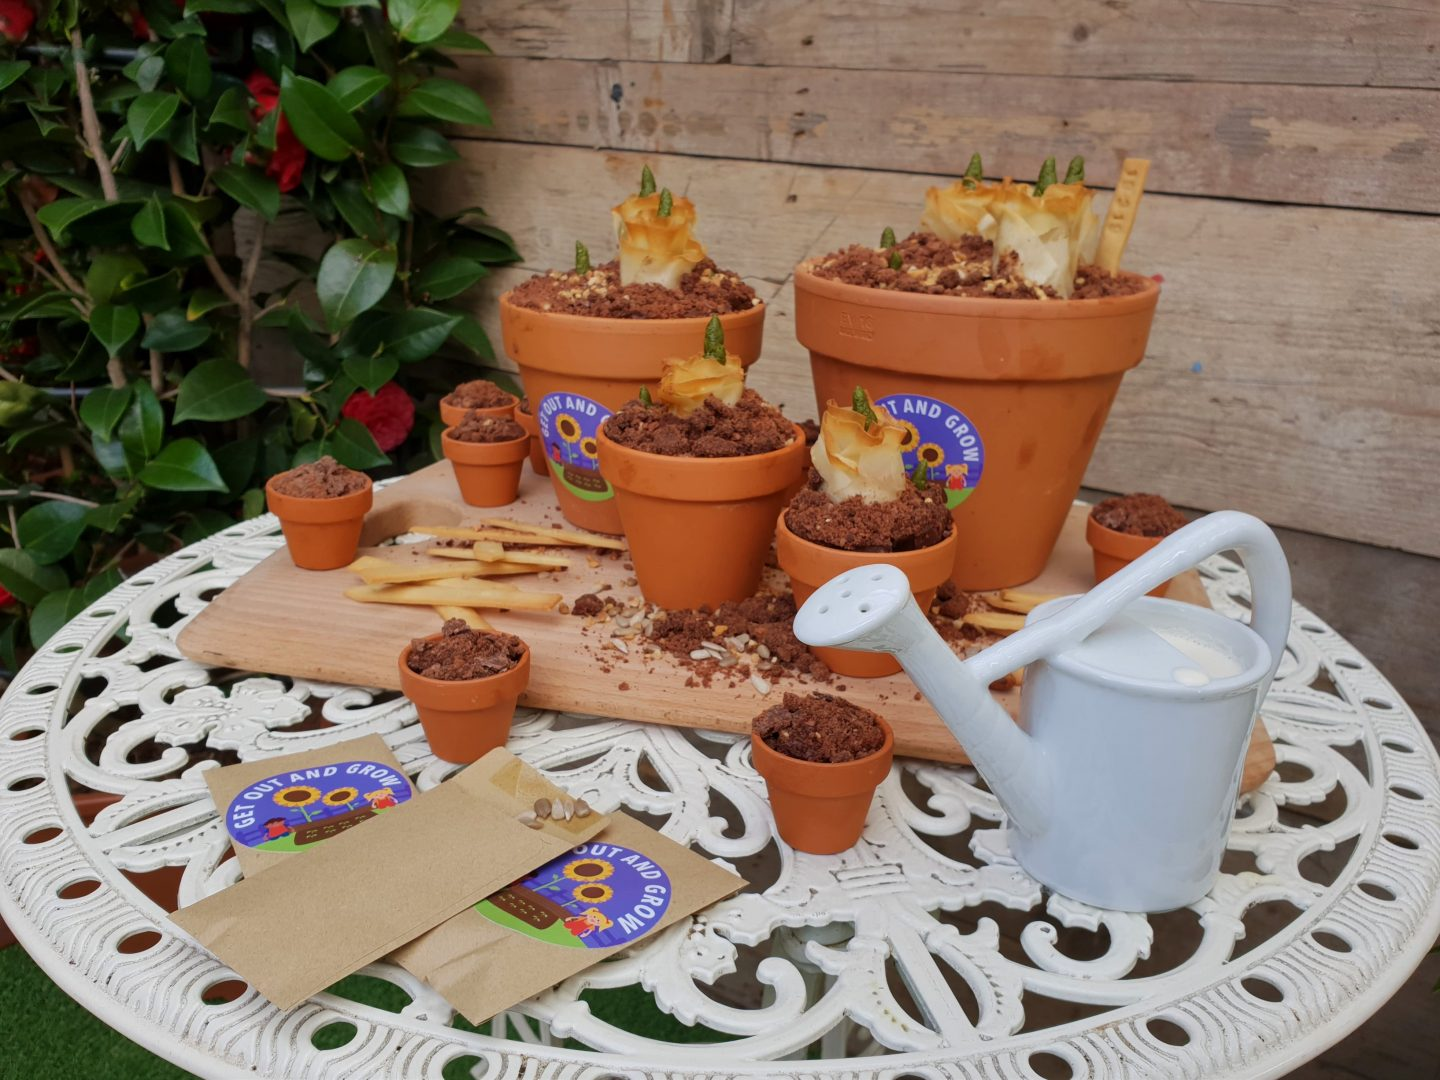 Get Out and Grow plant bulb cakes made by Great British Bake Off winner, Frances Quinn